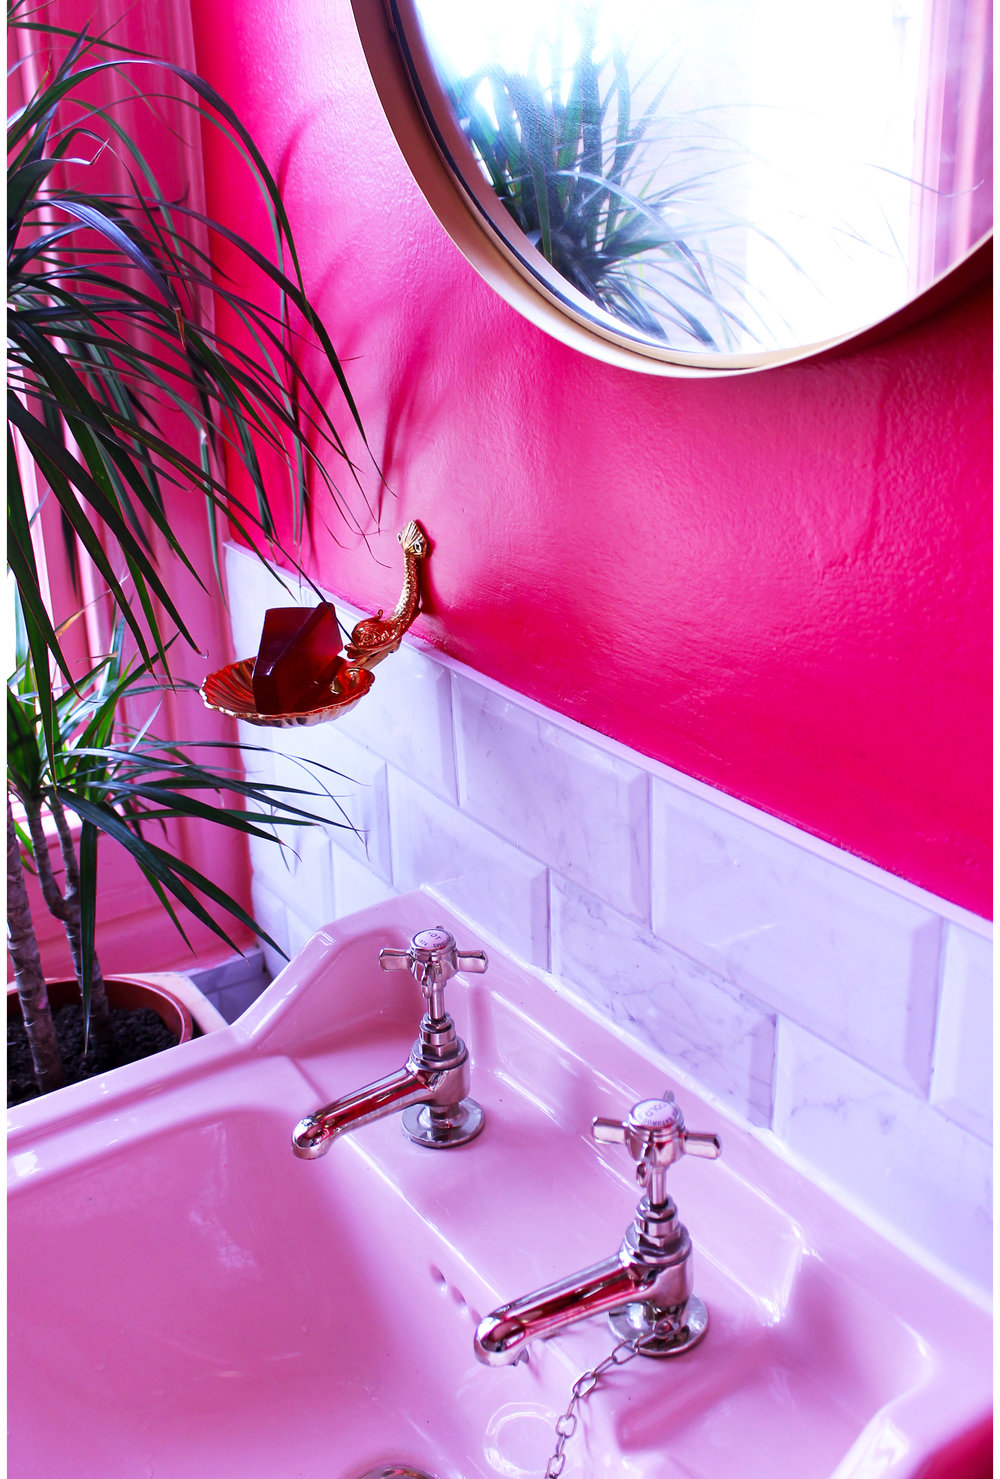 Bathroom Sink CU w border.jpg